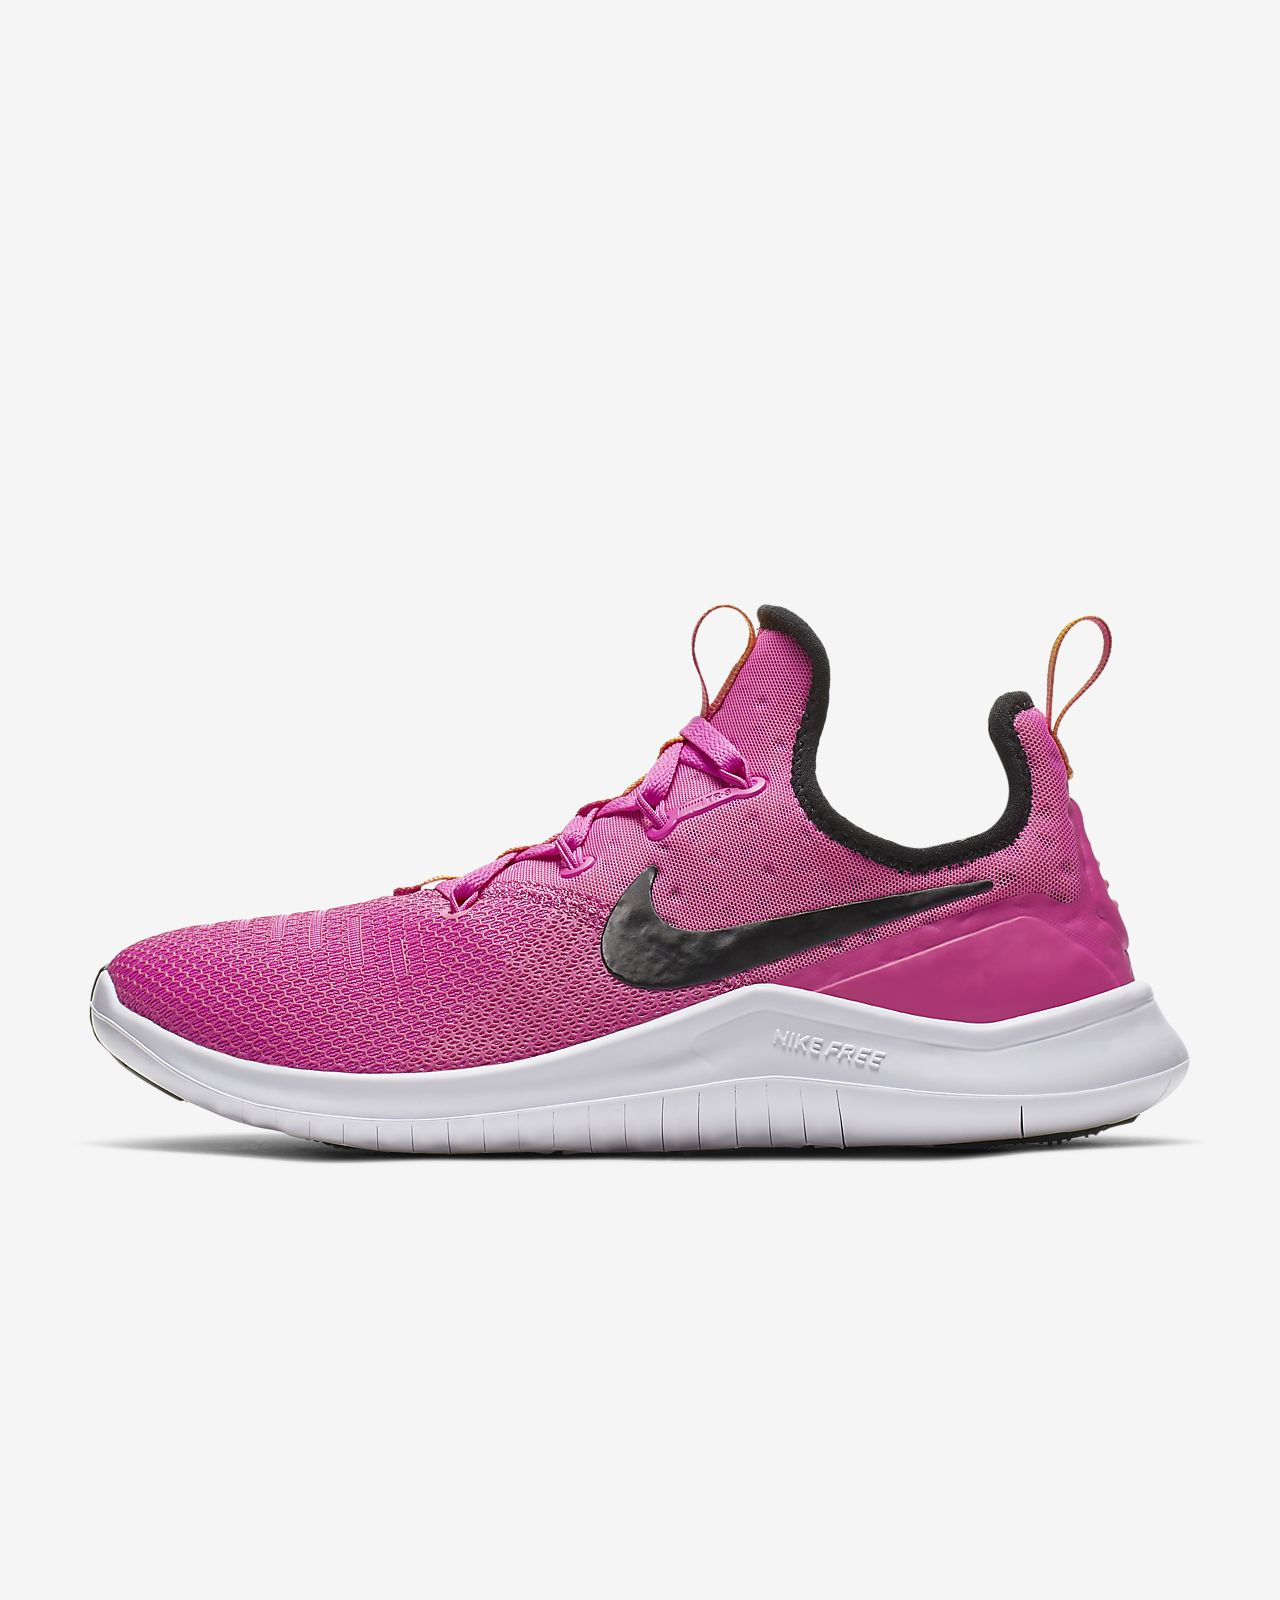 3d8d7c3bb4aa Nike Free TR8 Women s Gym HIIT Cross Training Shoe. Nike.com